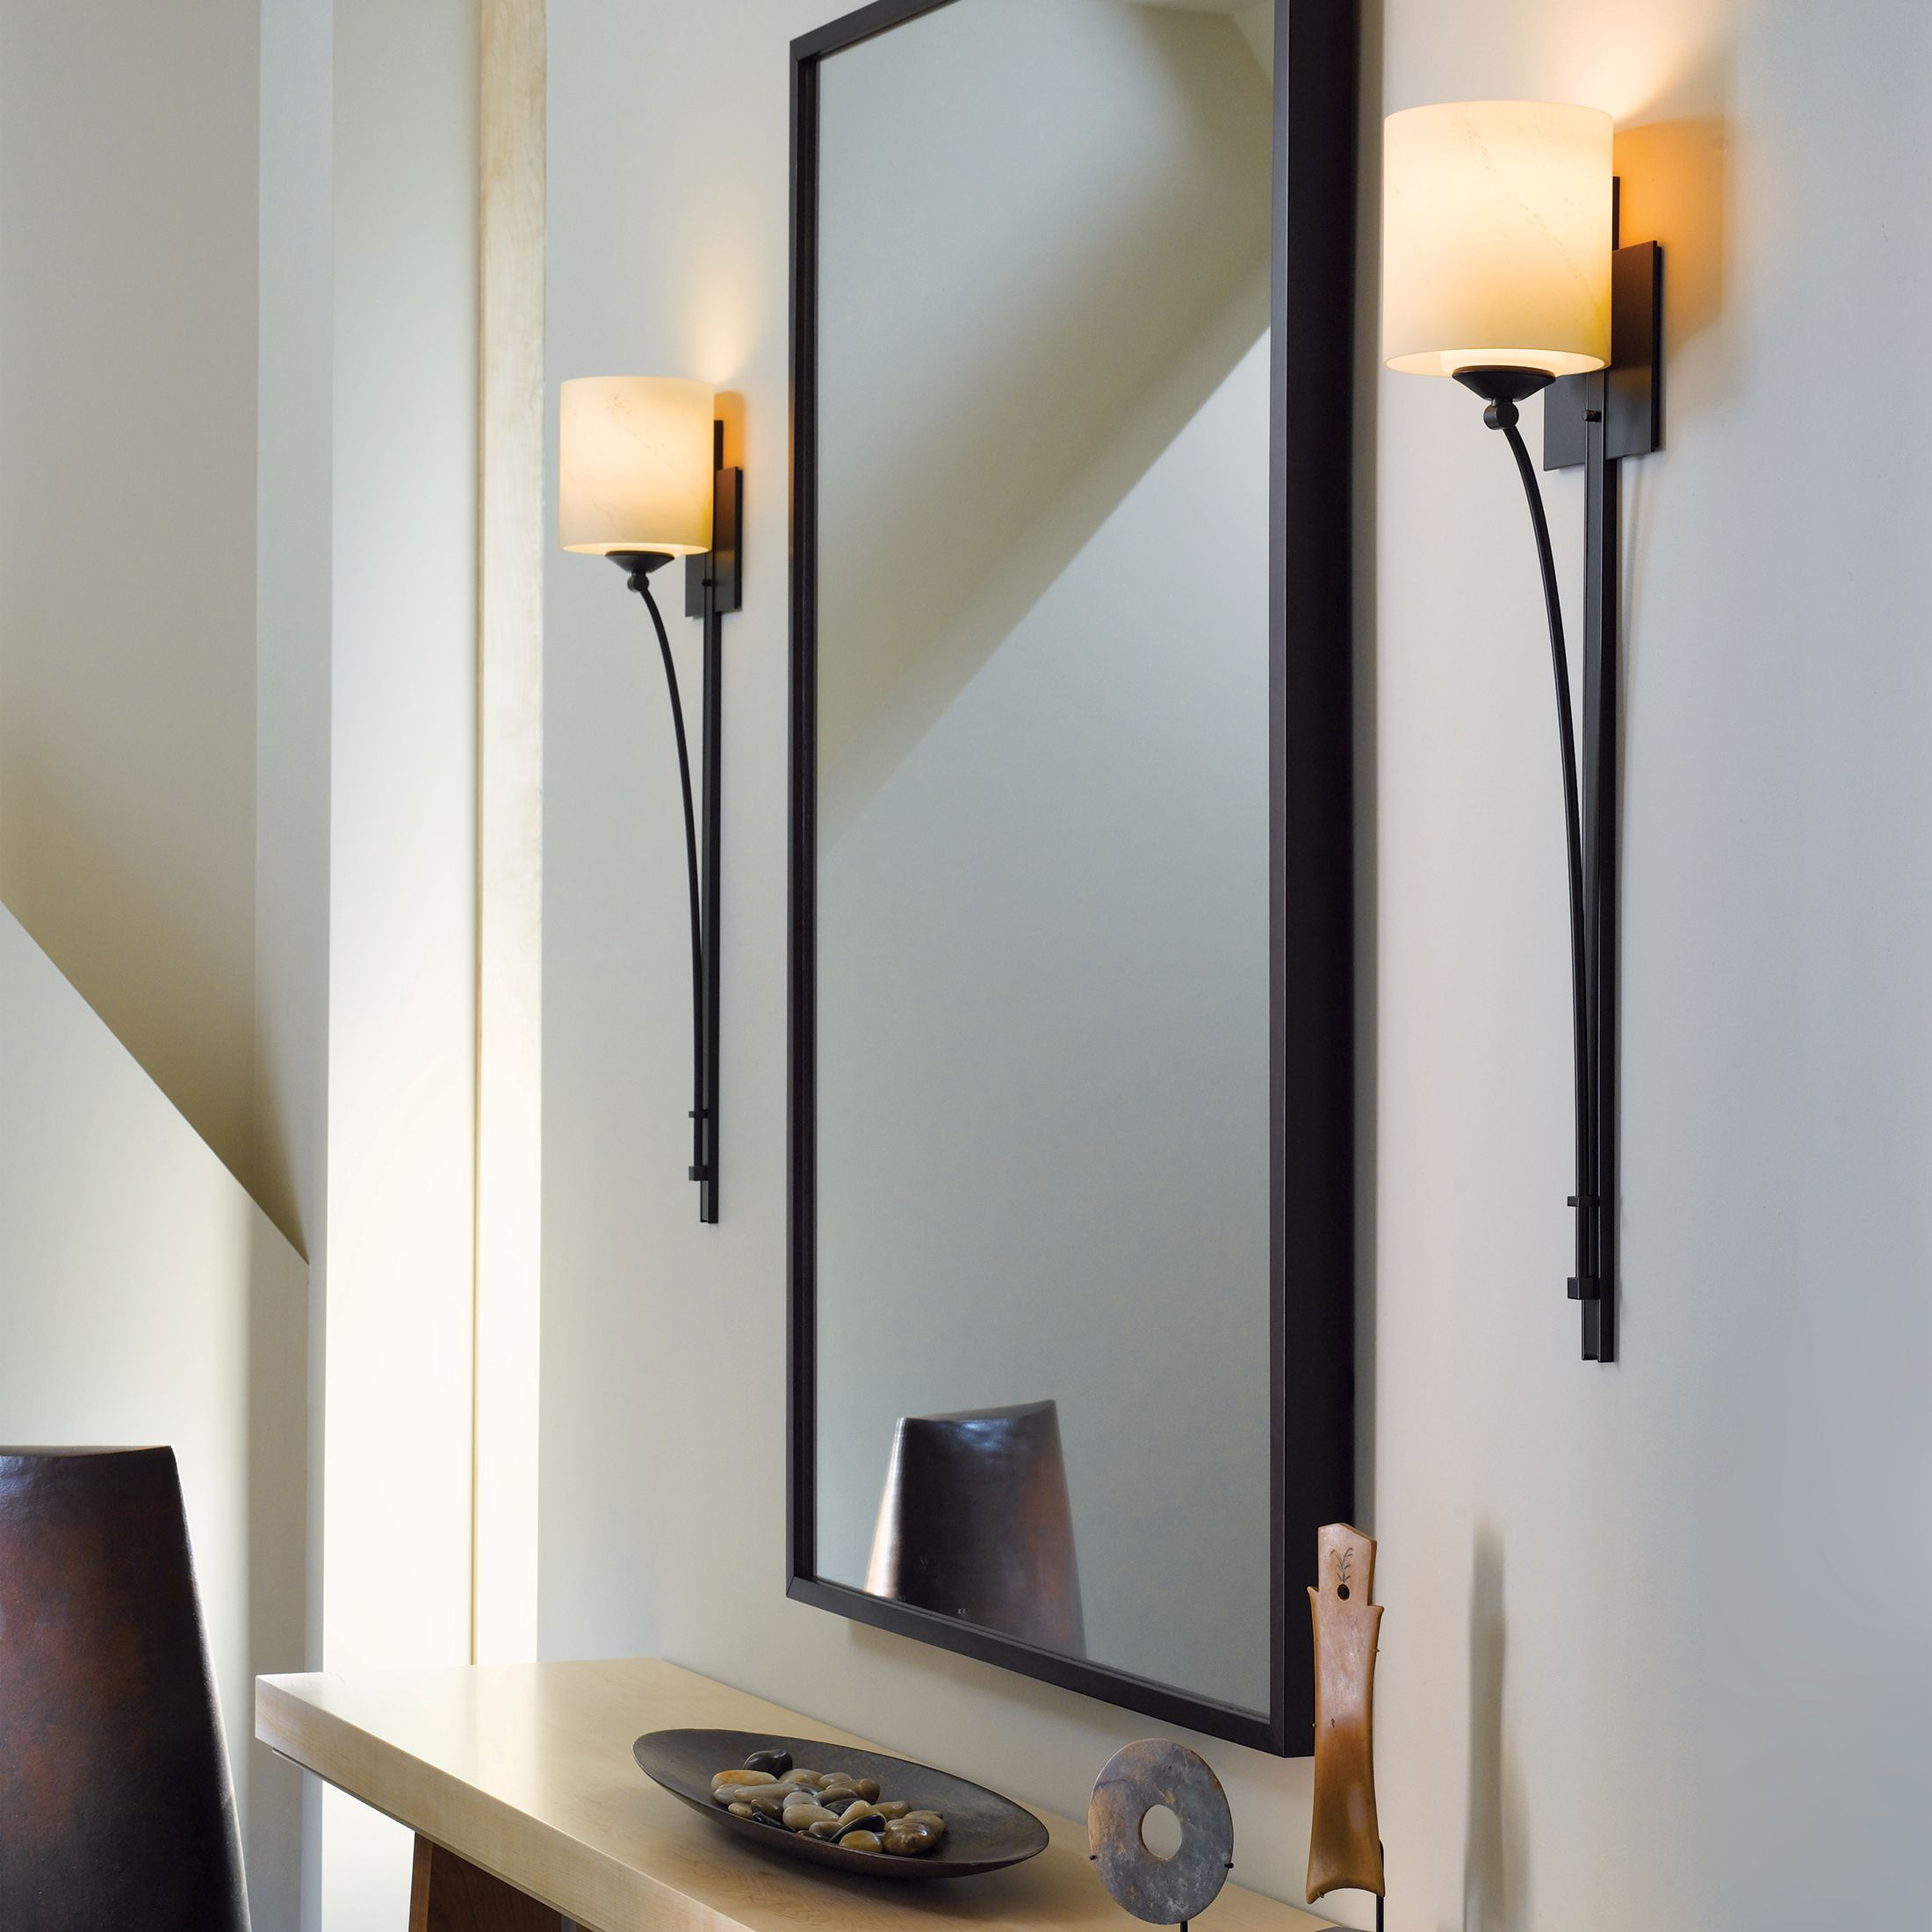 Lighting sconces for living room Commercial Wall 2046701007thumb Hubbardton Forge Formae Contemporary Light Sconce Hubbardton Forge